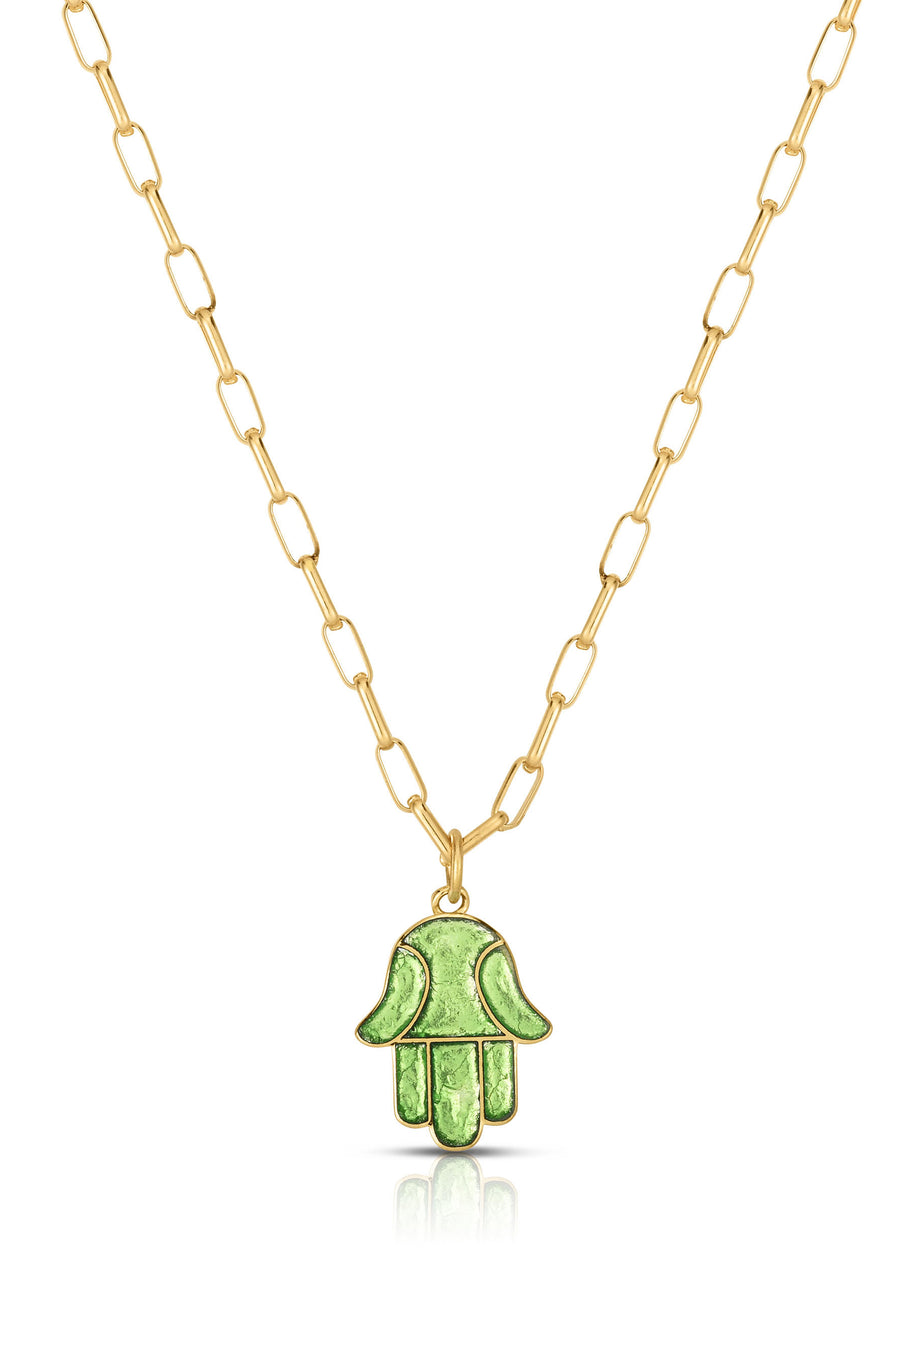 18K Gold & Enamel Mini Hamsa Necklace in Lime